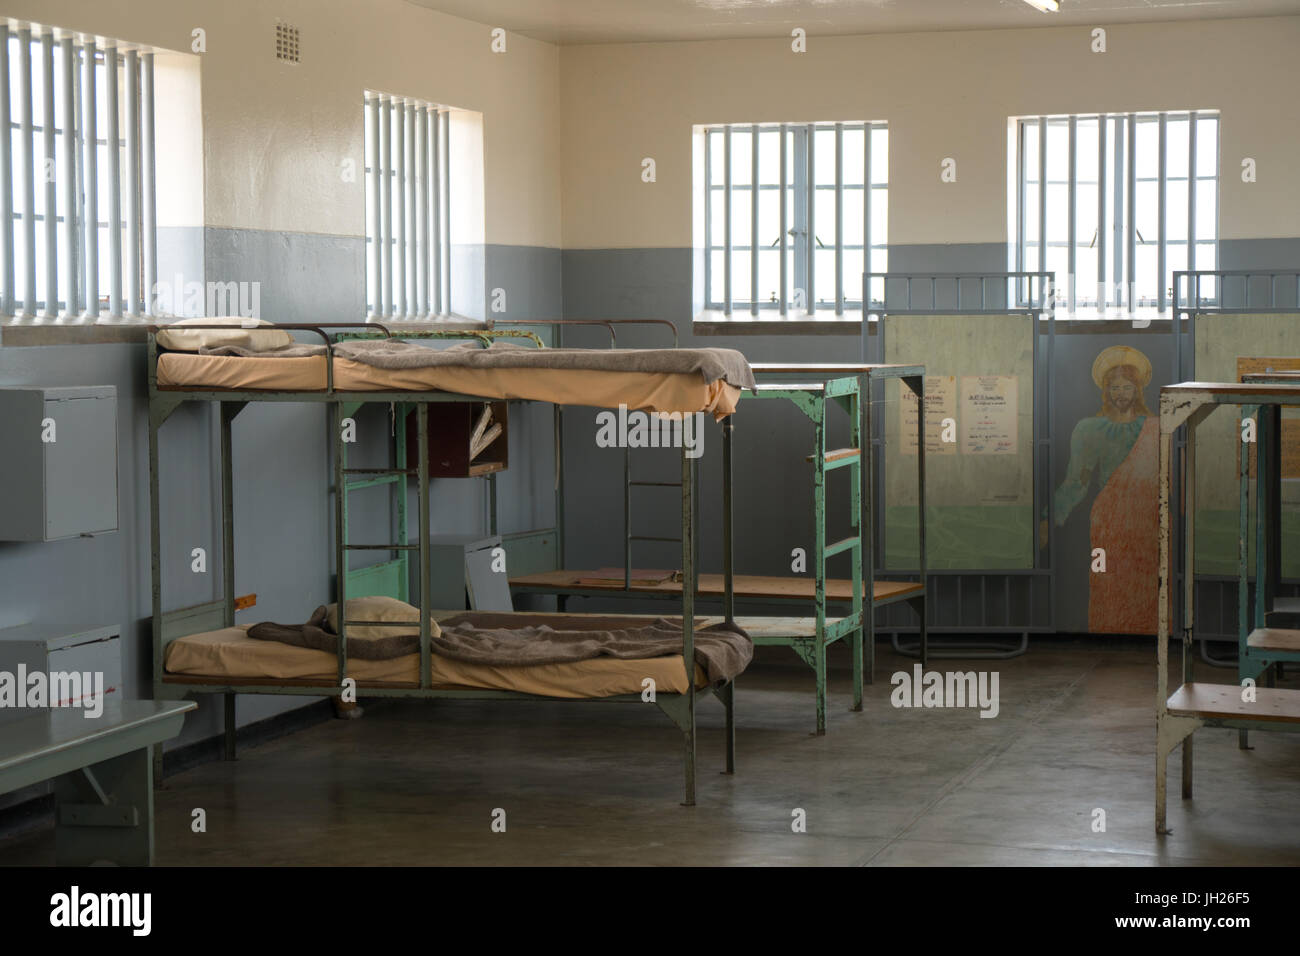 Dormitory with Christ mural, Robben Island, UNESCO World Heritage Site, Cape Town, South Africa, Africa - Stock Image